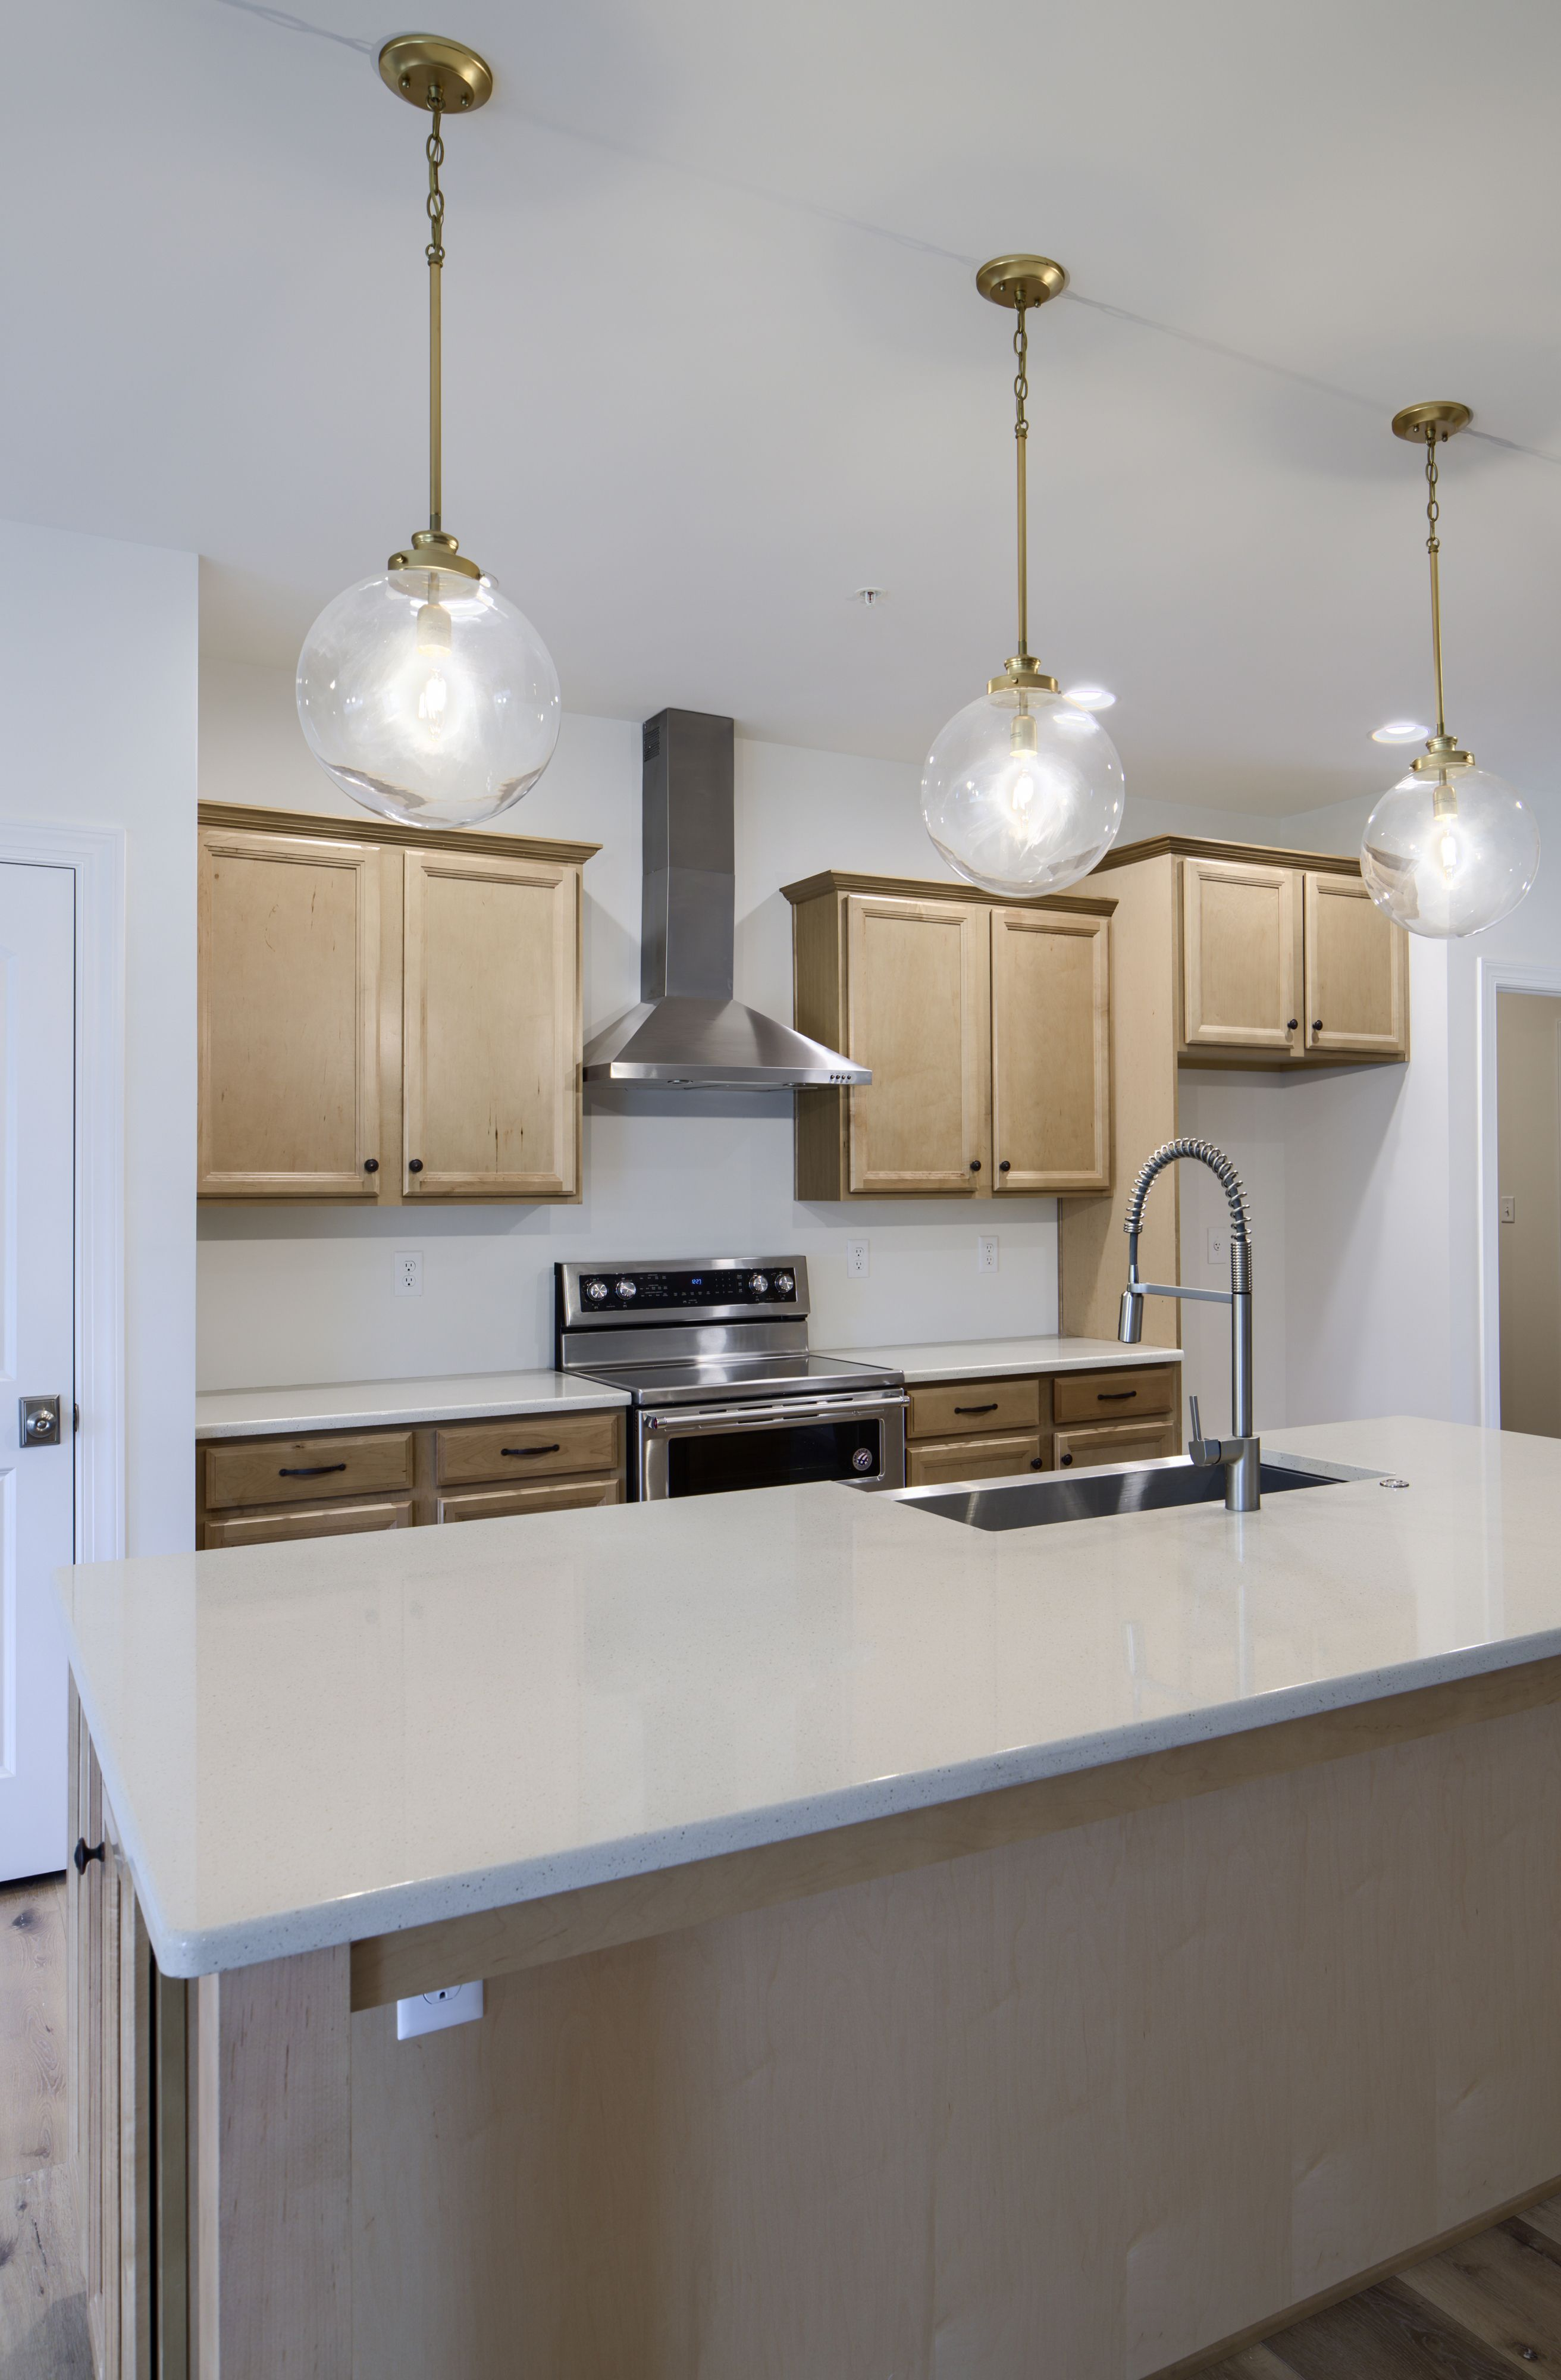 Kitchen featured in the Augusta Manor By Keystone Custom Homes in Baltimore, MD